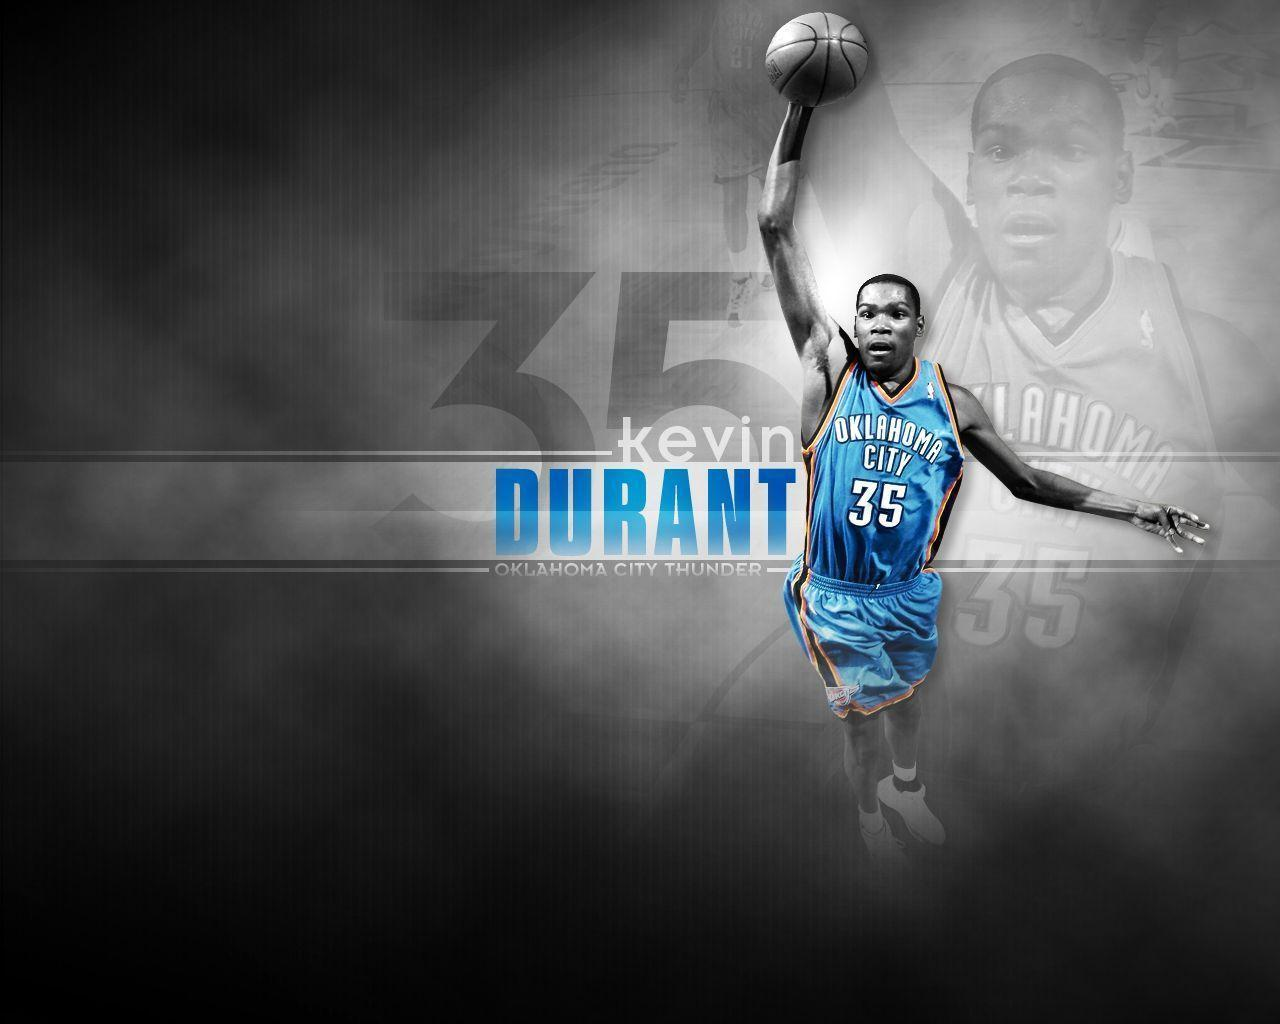 durant hd is - photo #7